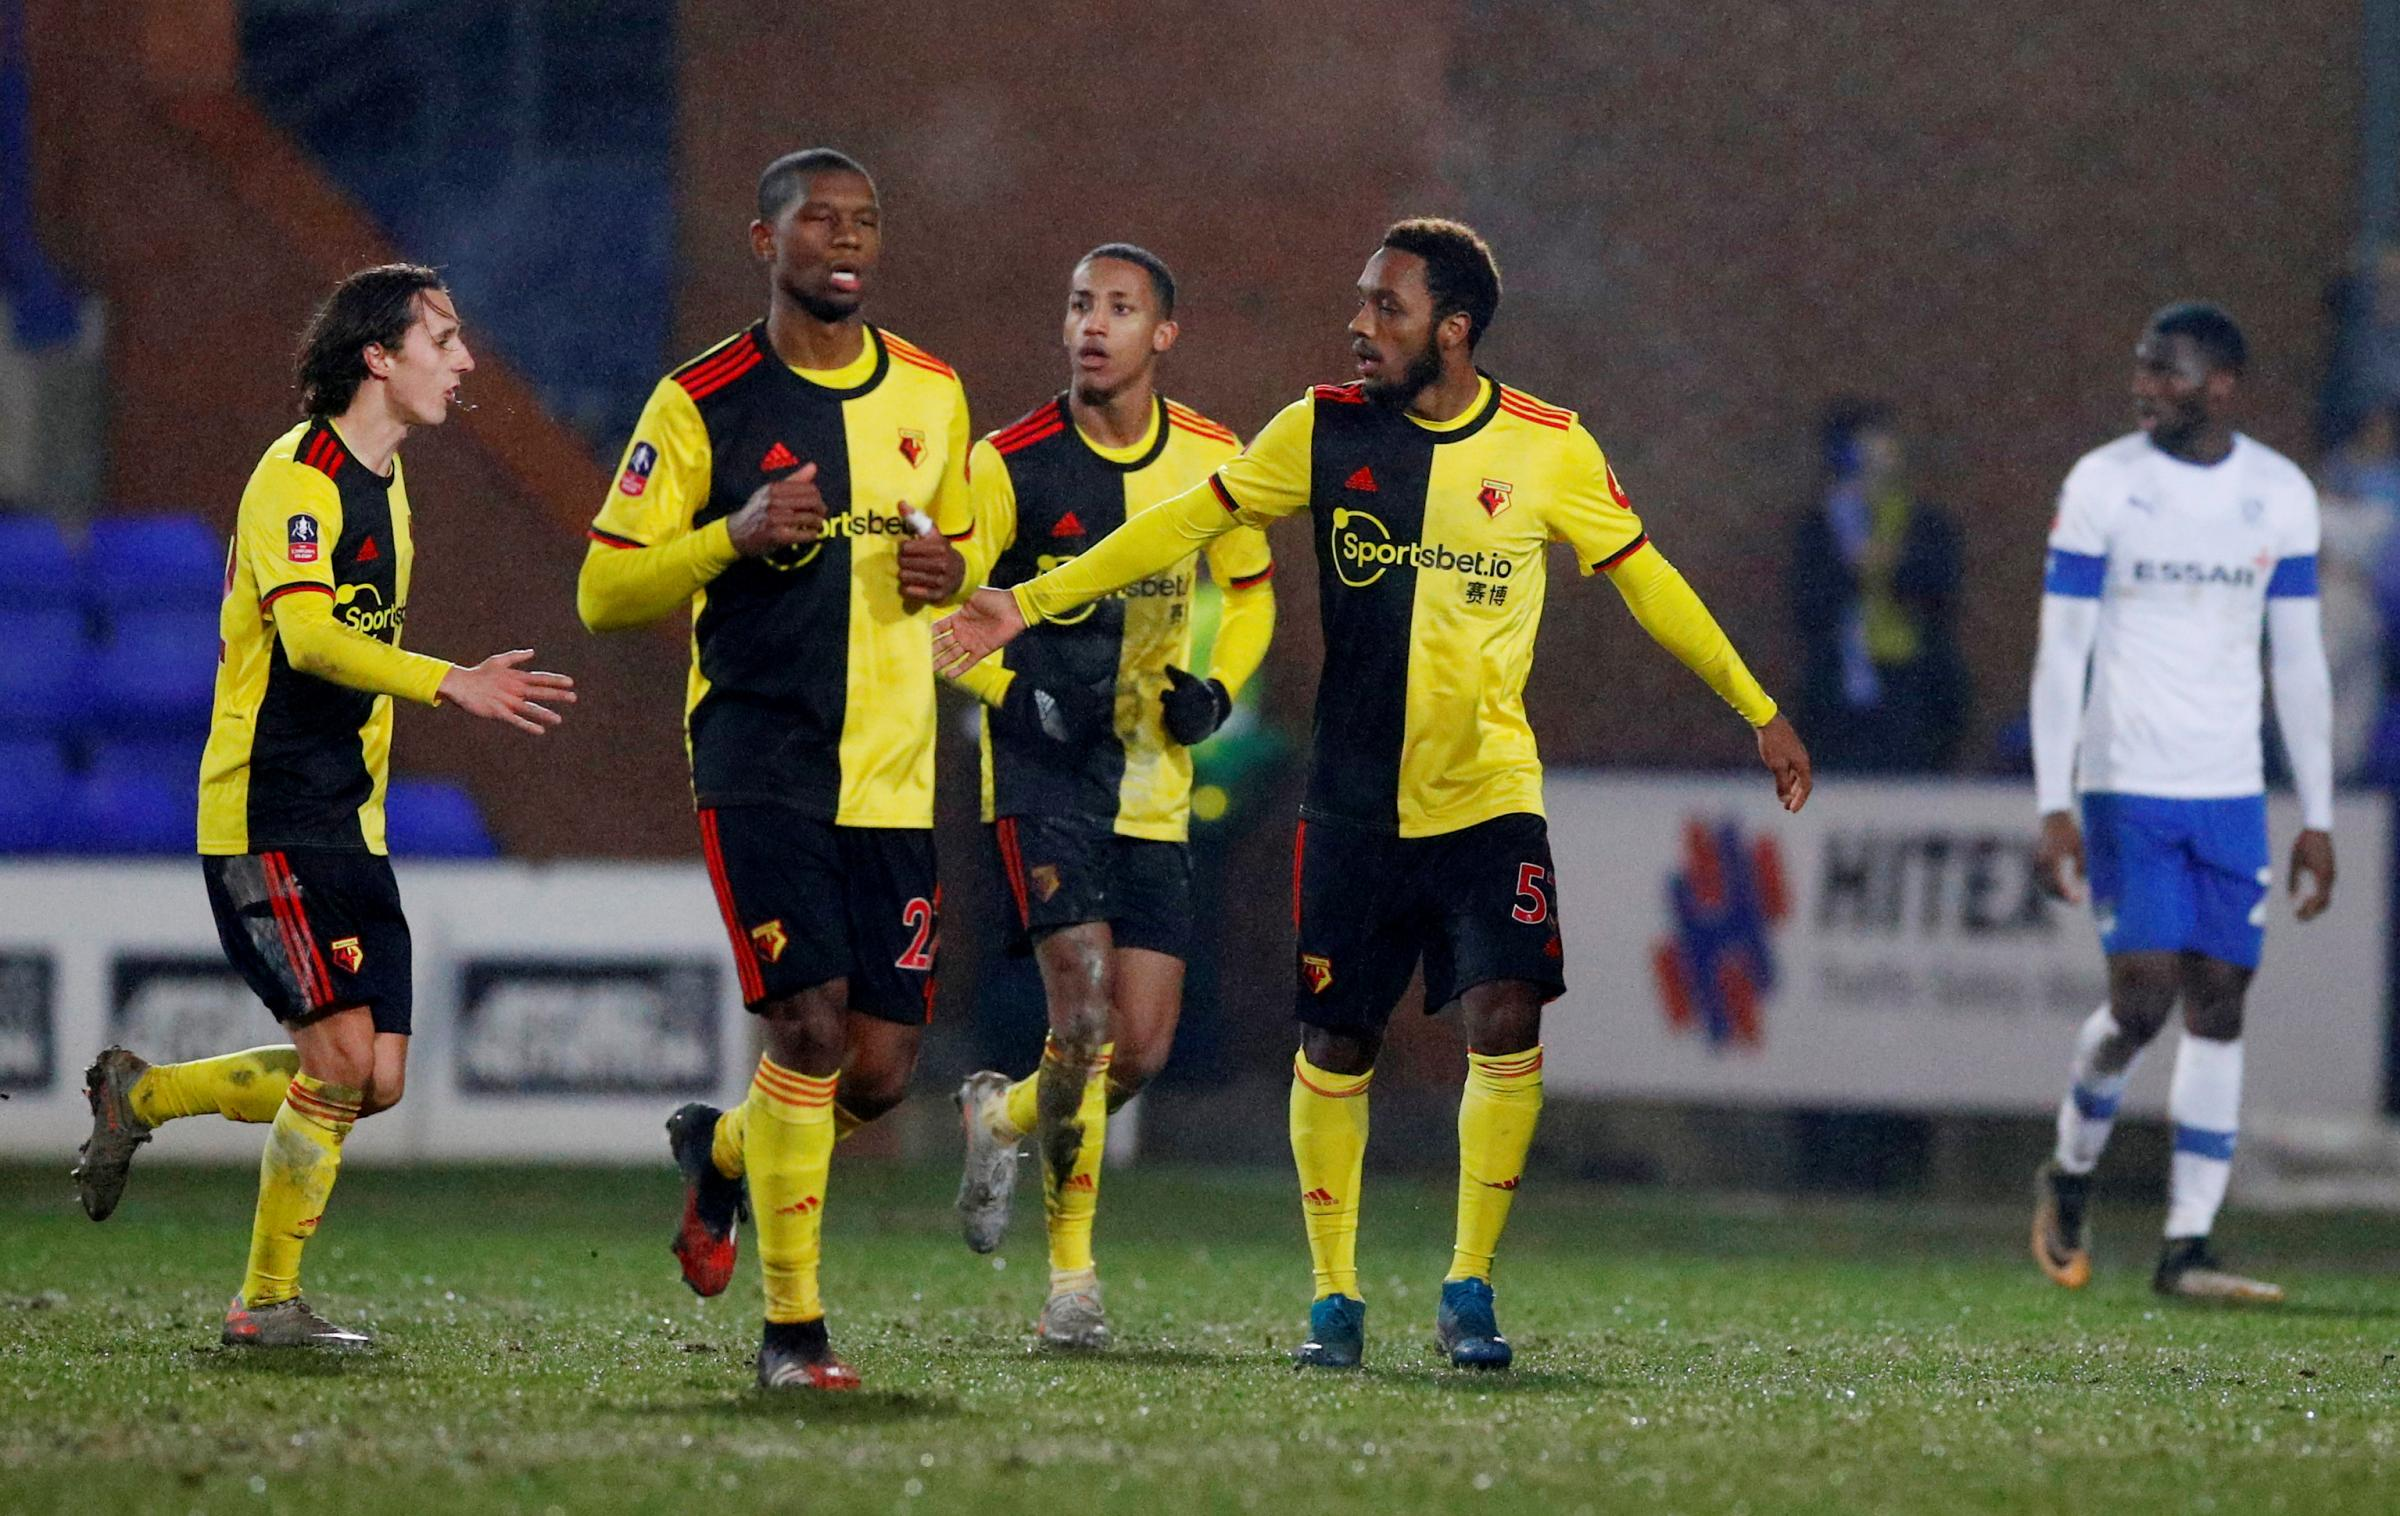 Watford players rated after slipping out of FA Cup at Tranmere Rovers